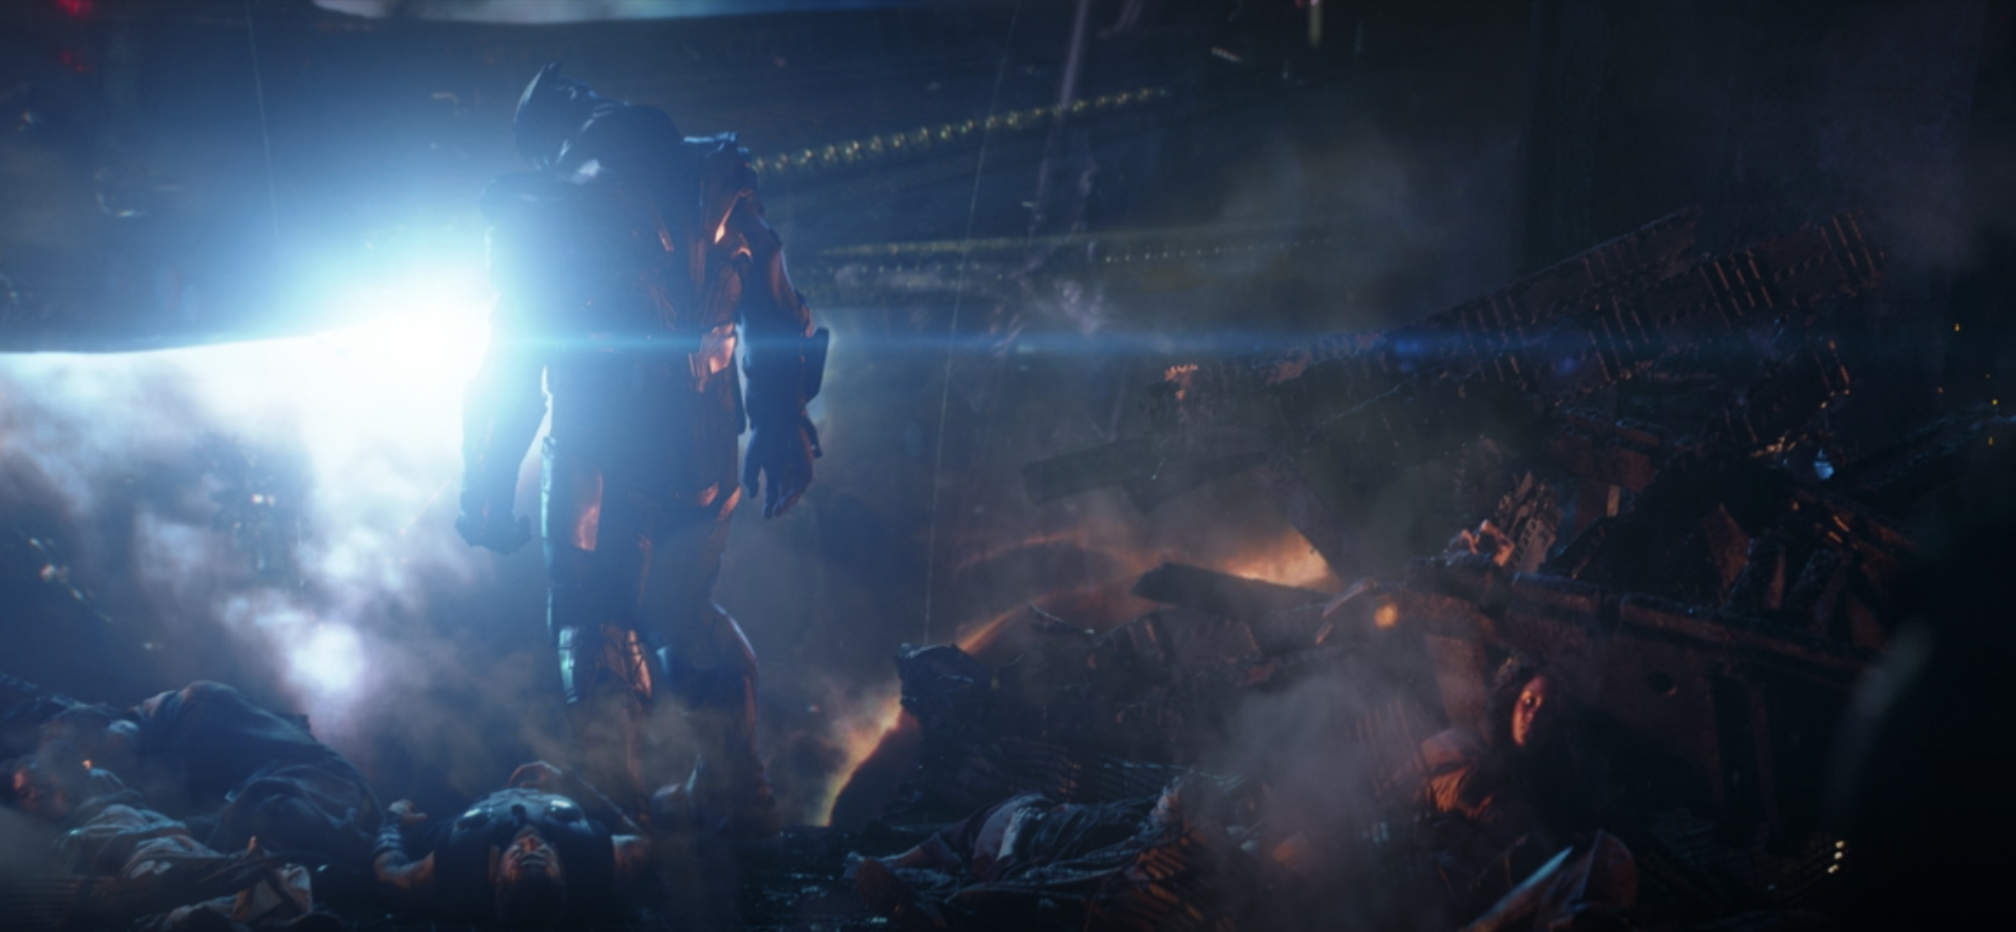 Thanos standing over bodies in the ship